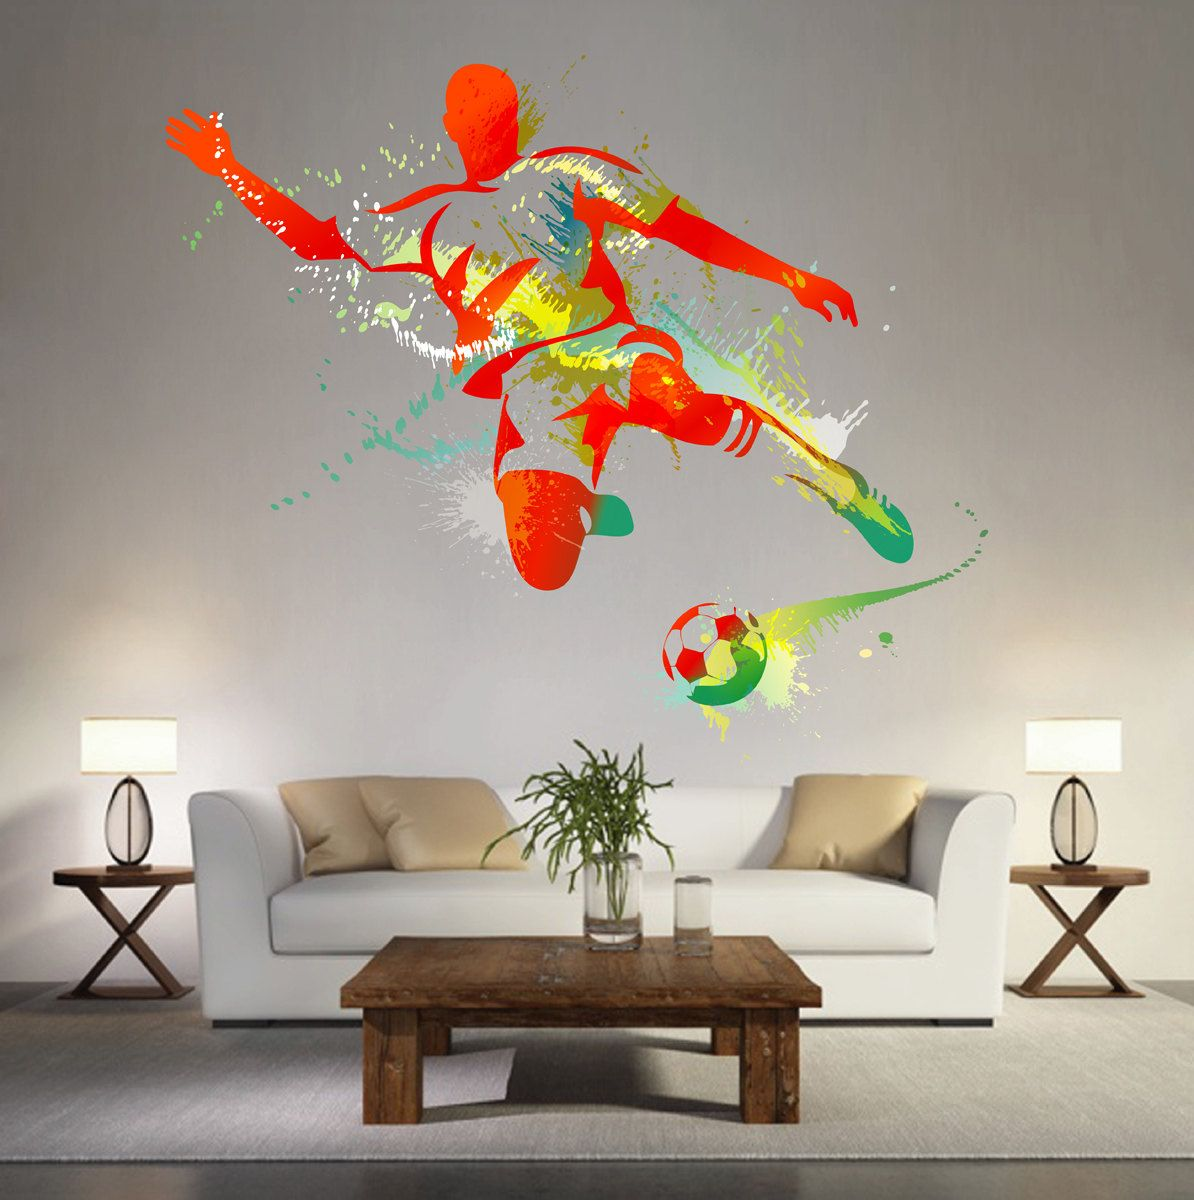 Ordinaire Kcik119 Full Color Wall Decal Soccer Football Ball Sport Spray Paint Room  Bedroom Sports Hall